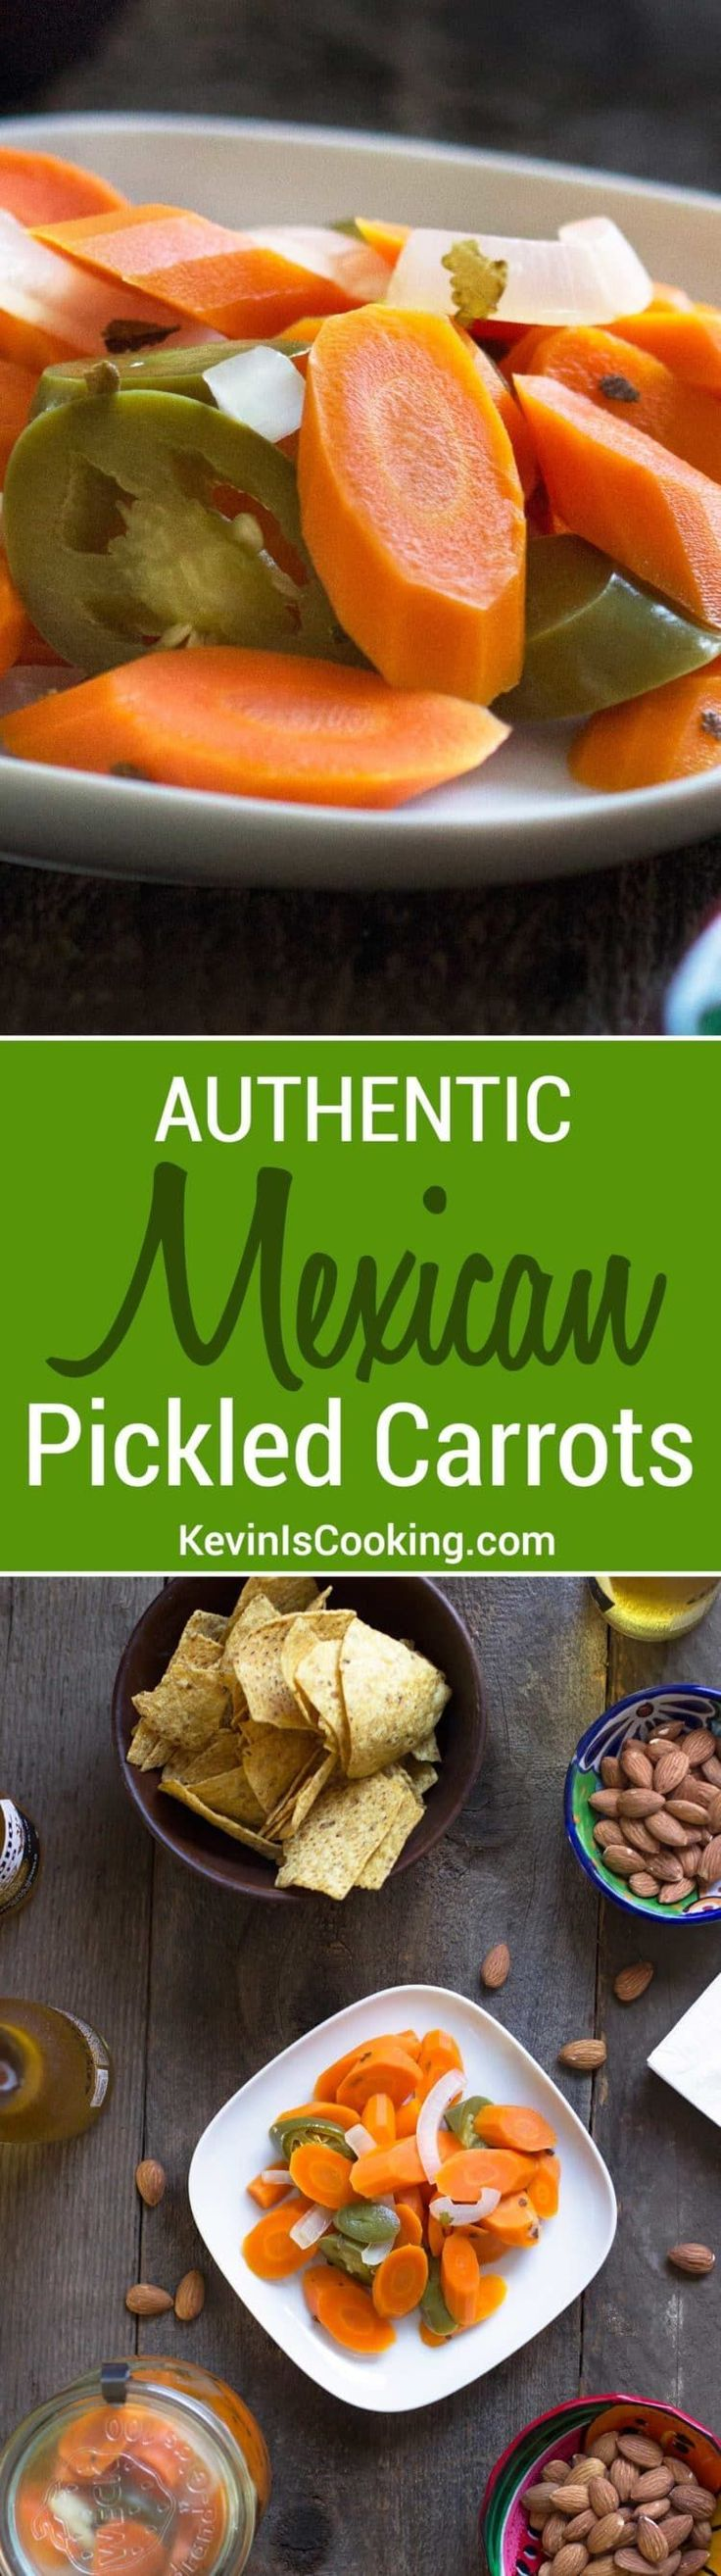 These Authentic Mexican Pickled Carrots a great make-it-at-home version that are just like the ones you get at Mexican restaurants and so easy to make! via @keviniscooking